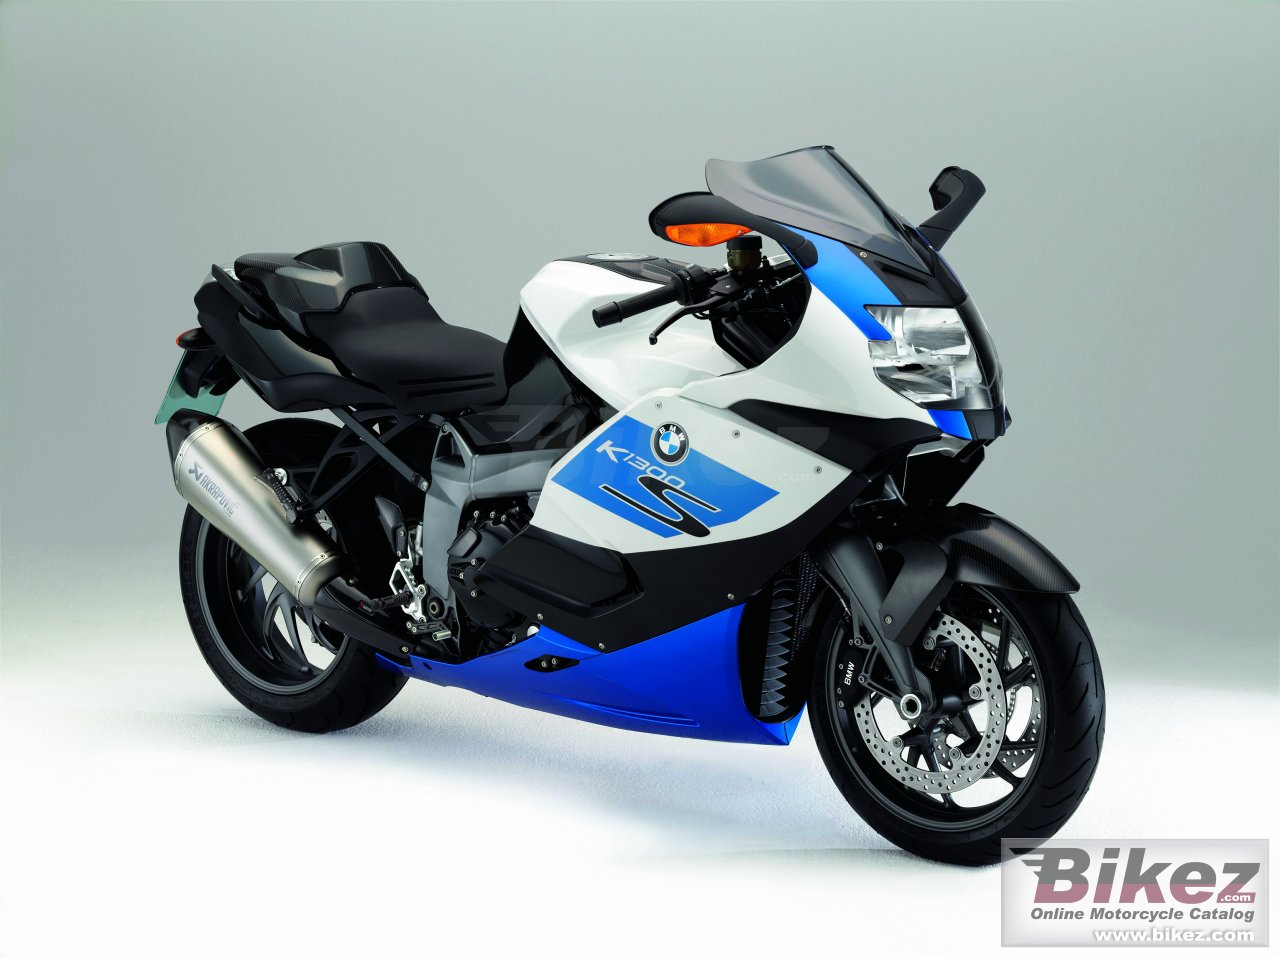 Big BMW k 1300 s picture and wallpaper from Bikez.com